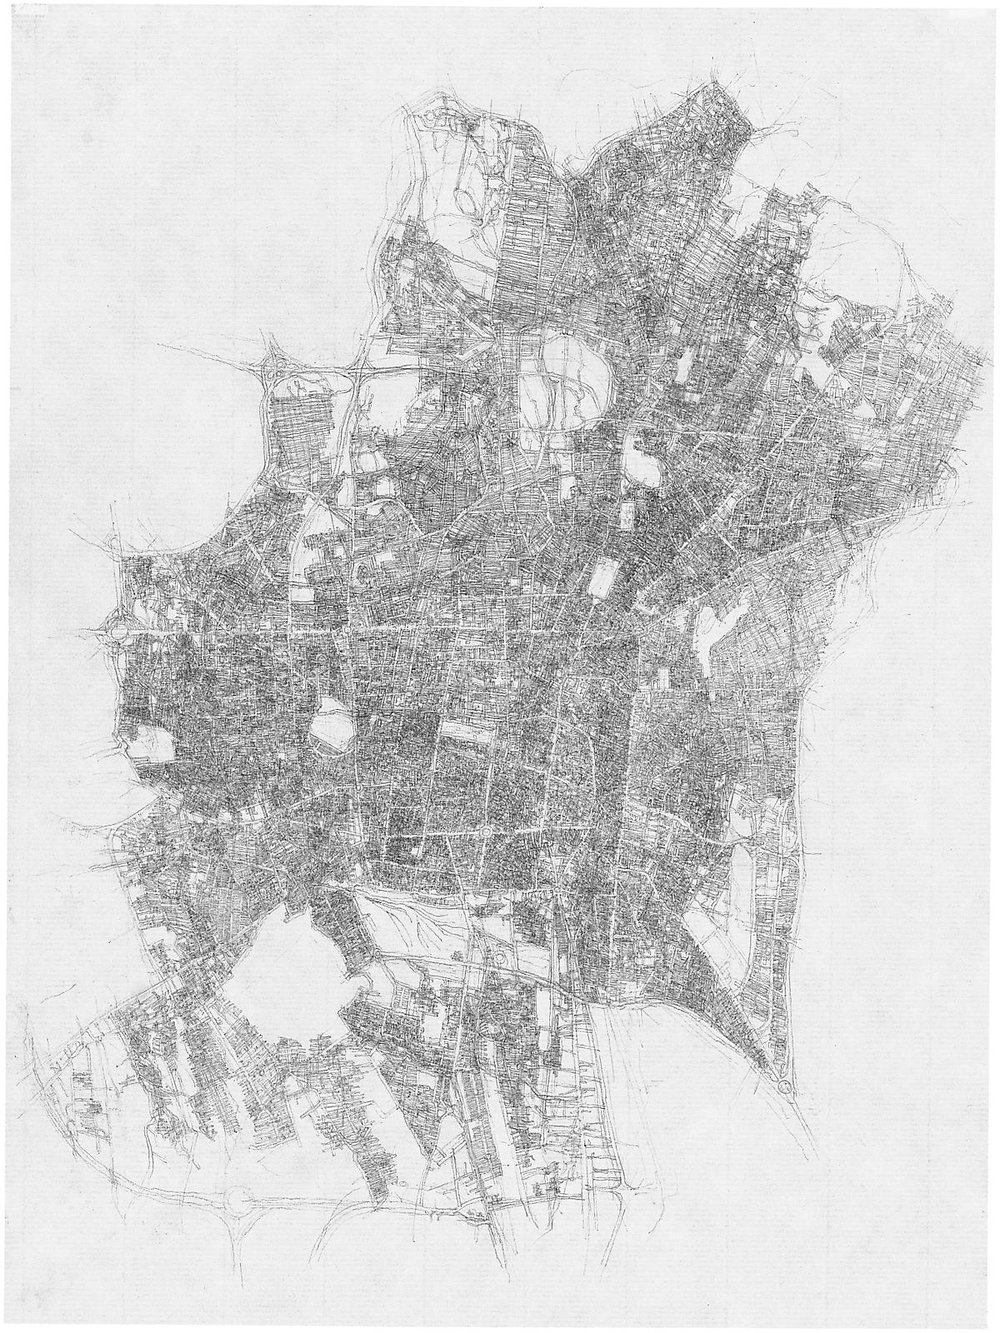 City Drawings Series - Tehran-n44 1997 pencil on paper 31 x 21 cm / 12.2 x 8.3 in. Click on the picture for source.